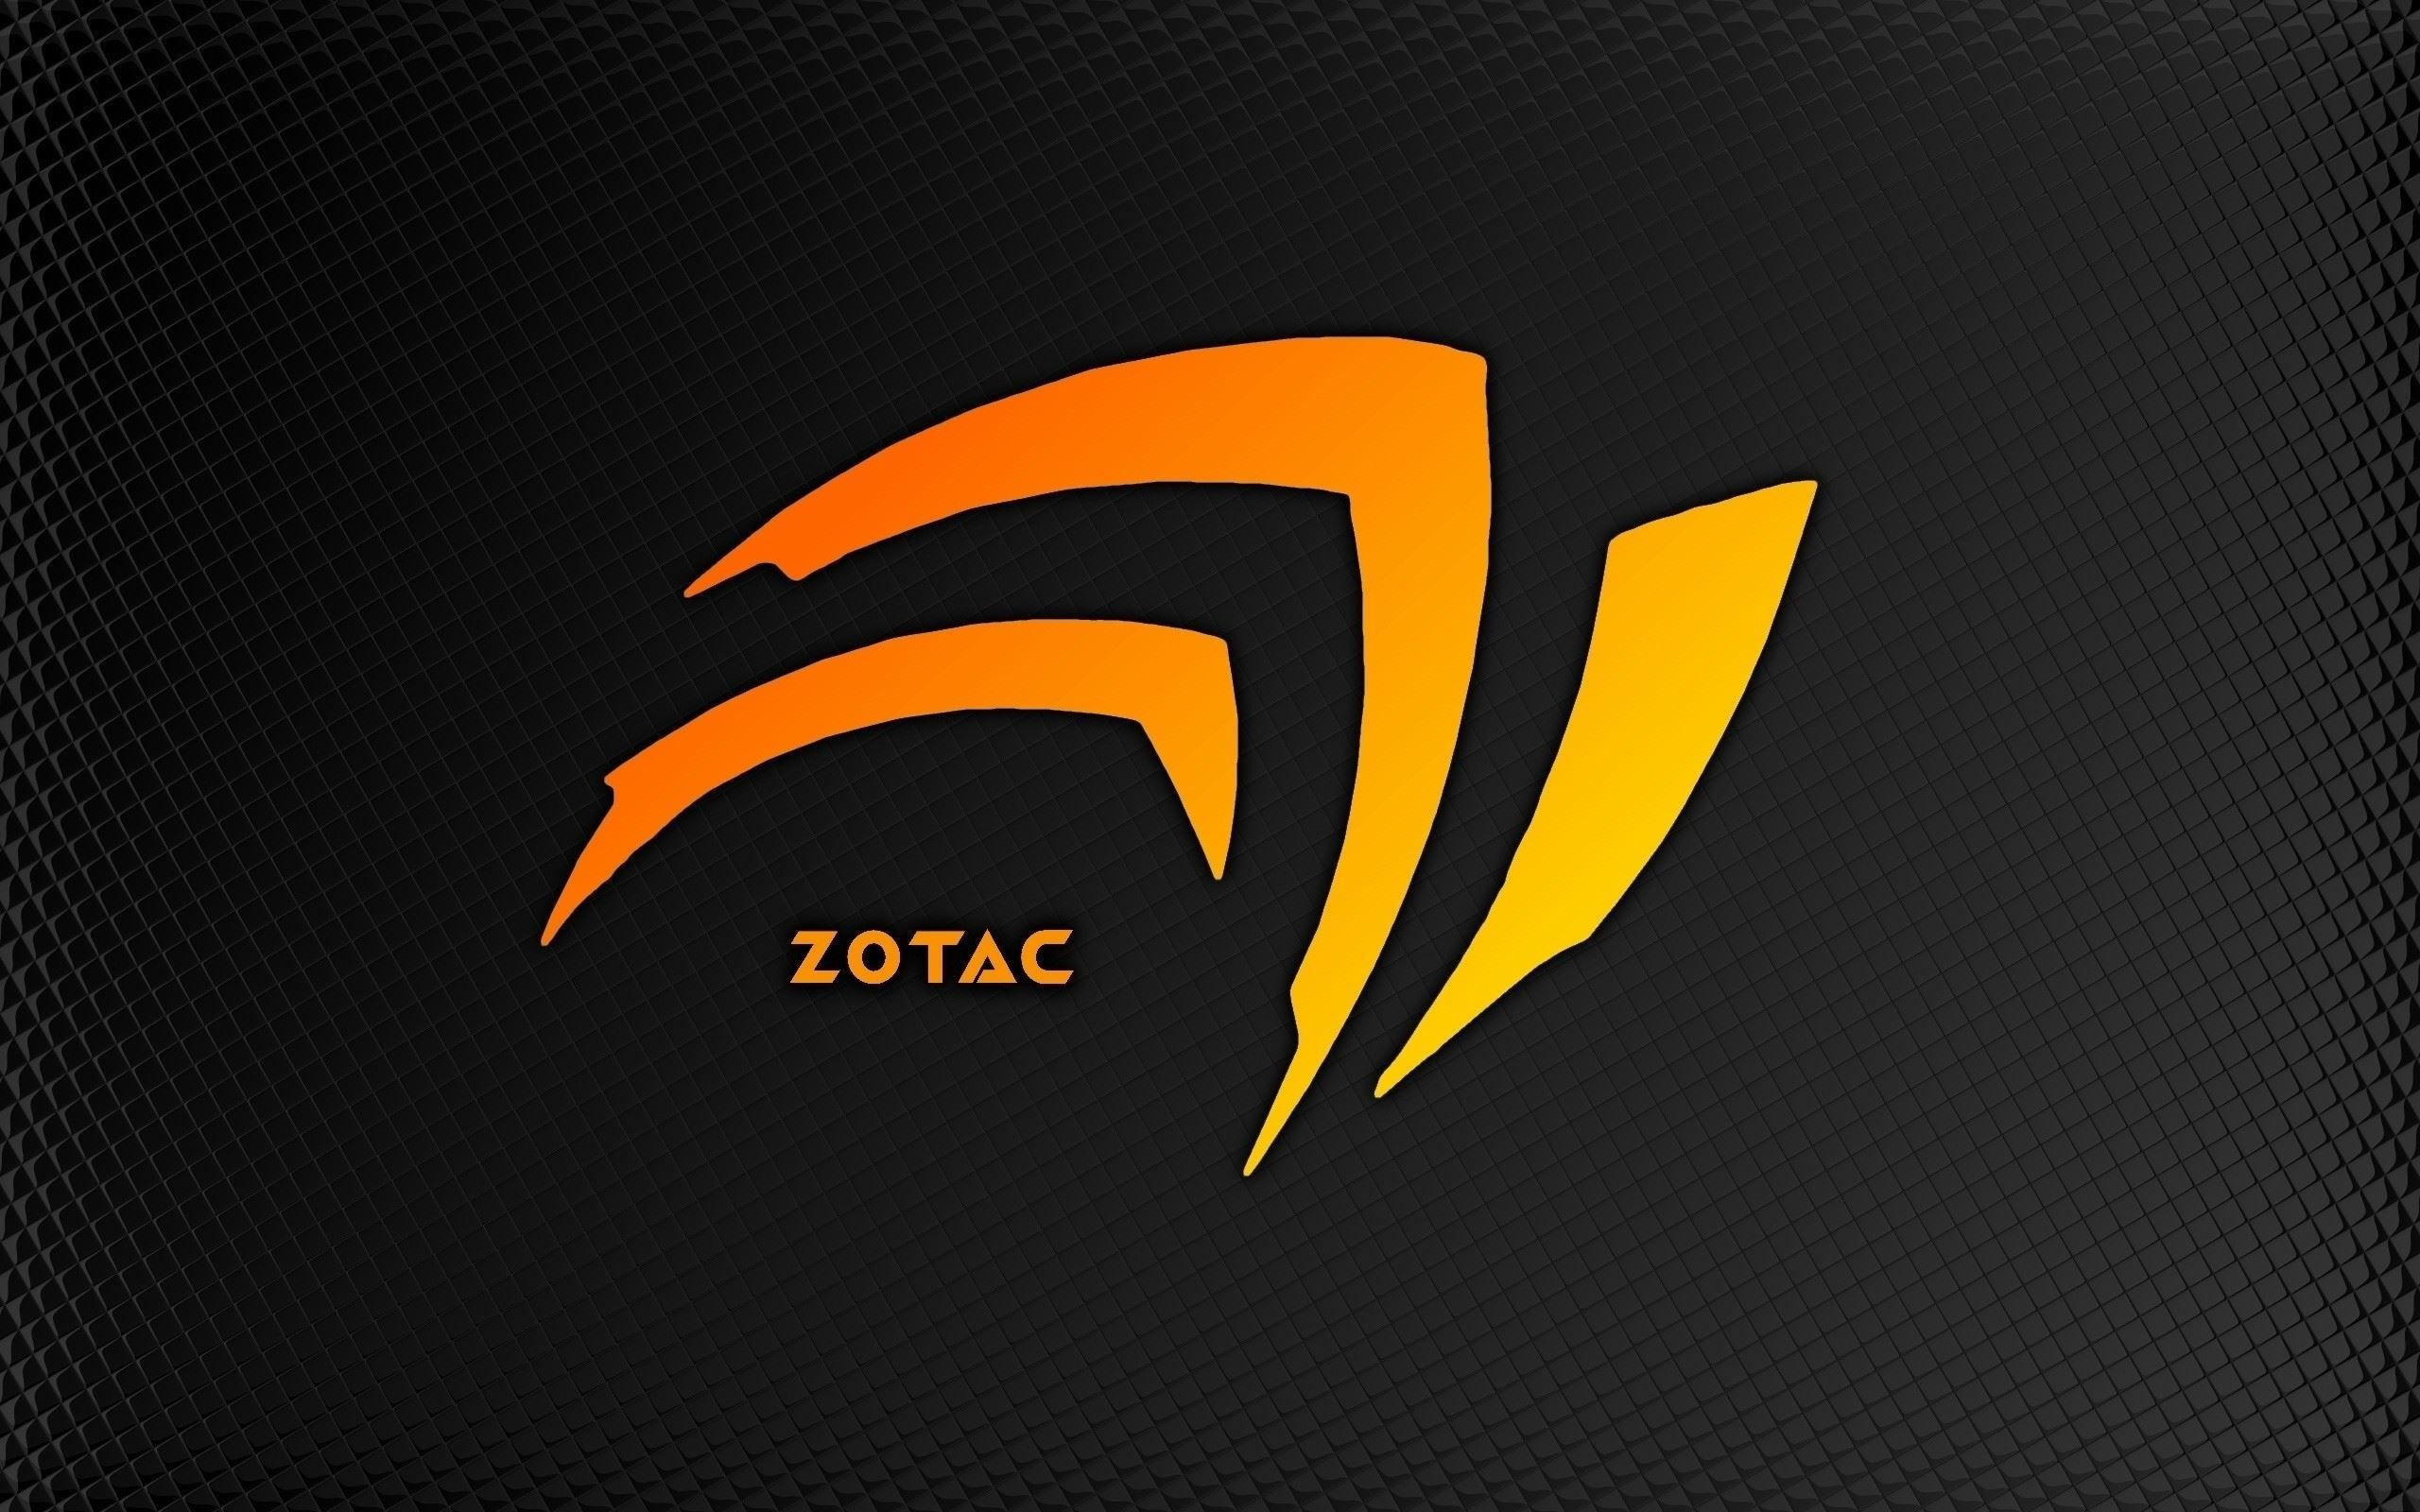 Cool Zotac Graphics Hardware Computer Pictures